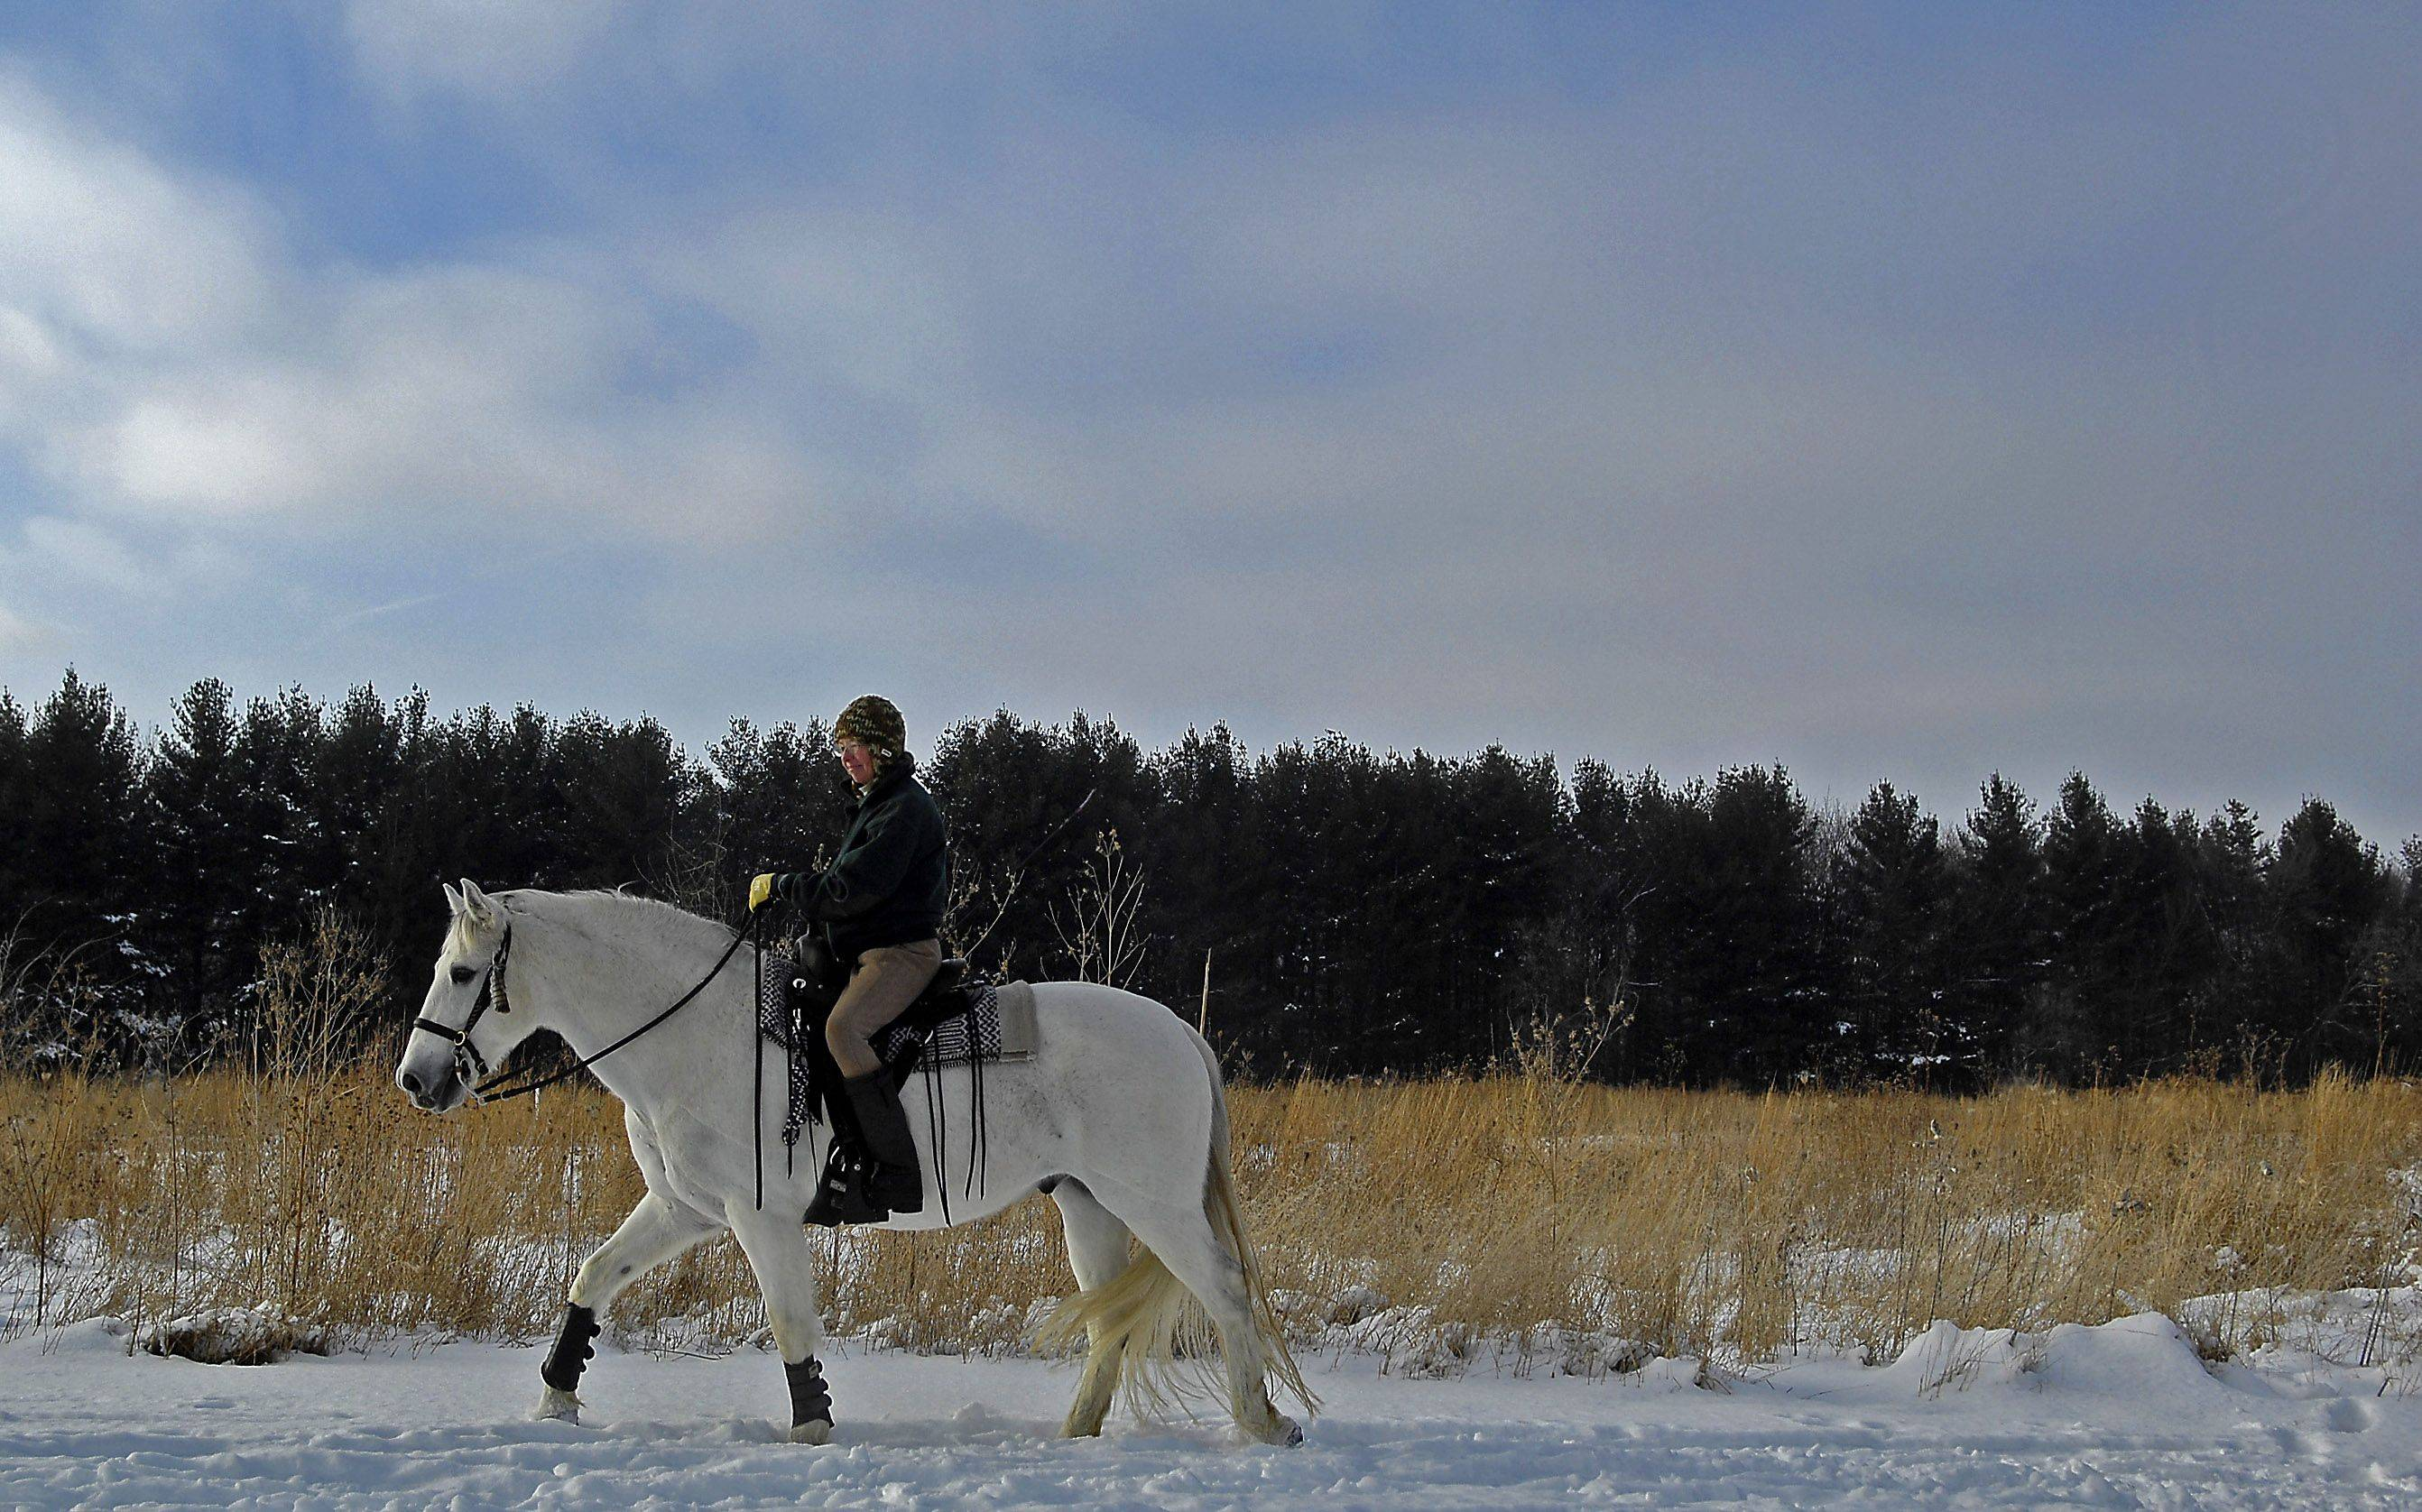 Deb Callister of Campton Hills and her horse Norman go for a winter ride through LeRoy Oakes Forest Preserve in St. Charles Monday. Callister said in the summer they ride in the area about once a week, but this is only the second time they've been out this winter. She said the two joined the Kane County mounted rangers and will begin working with them next year.